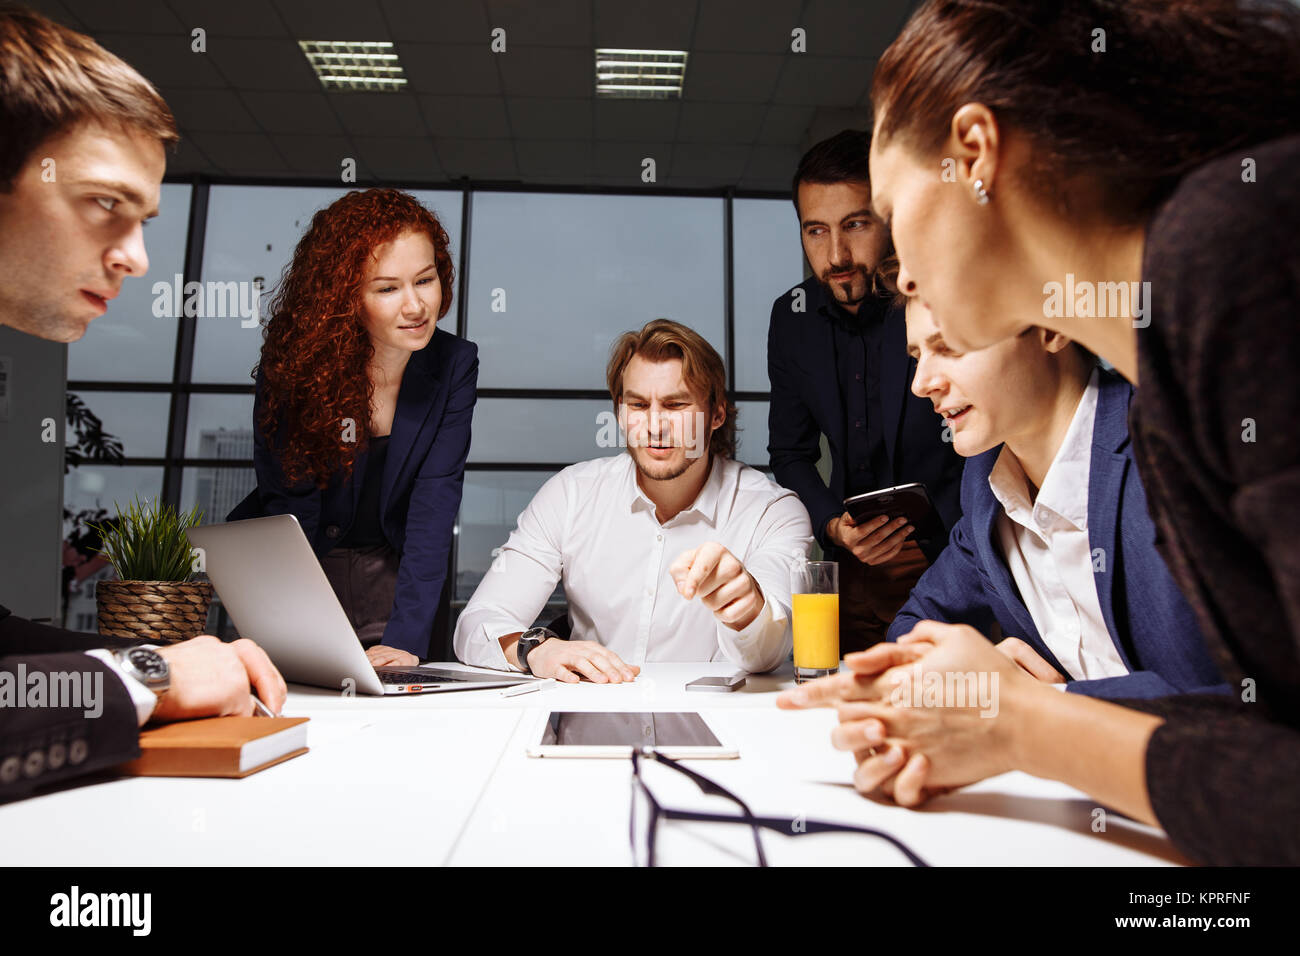 Business man making presentation at office - Stock Image